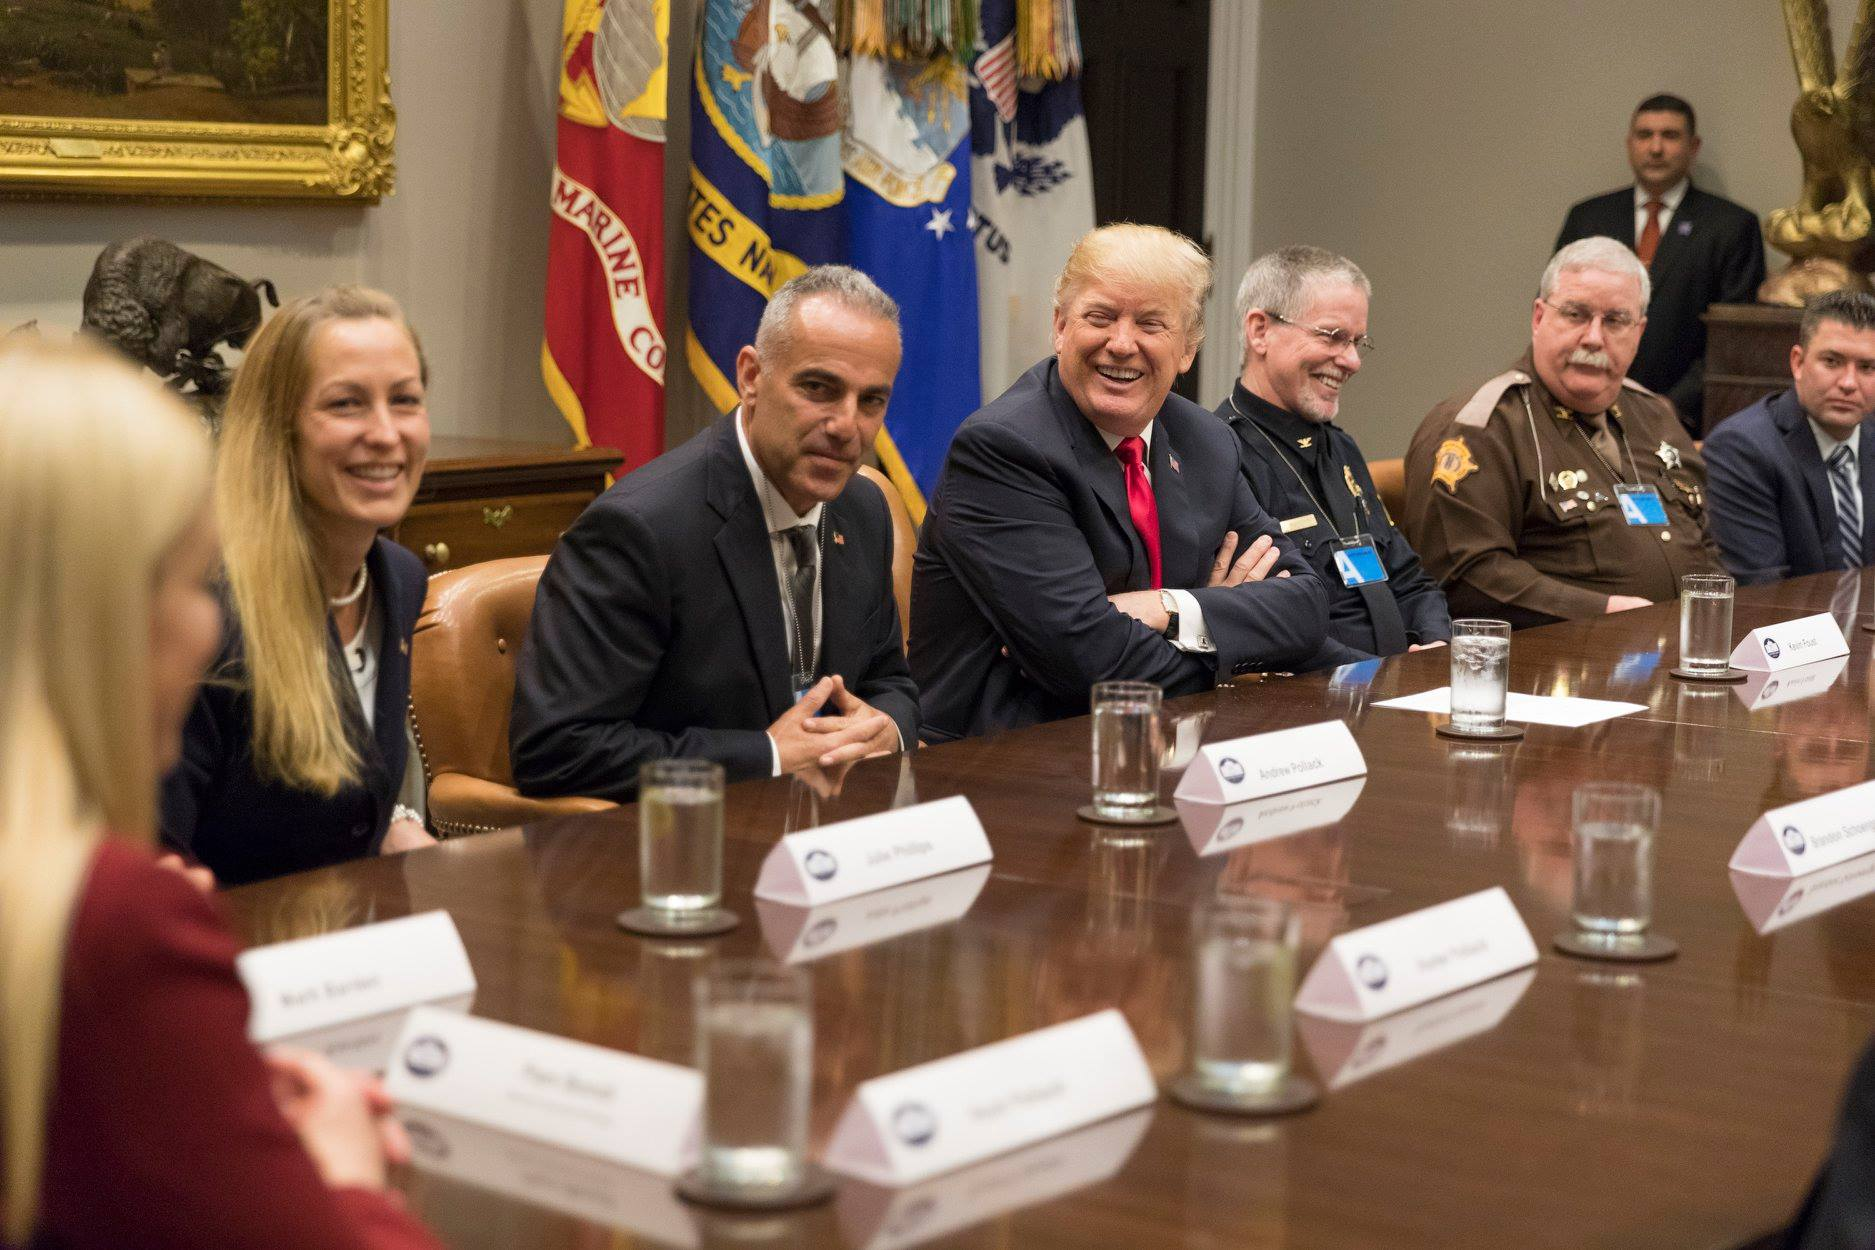 Andrew_Pollack and his wife, sitting along side President Trump and others.